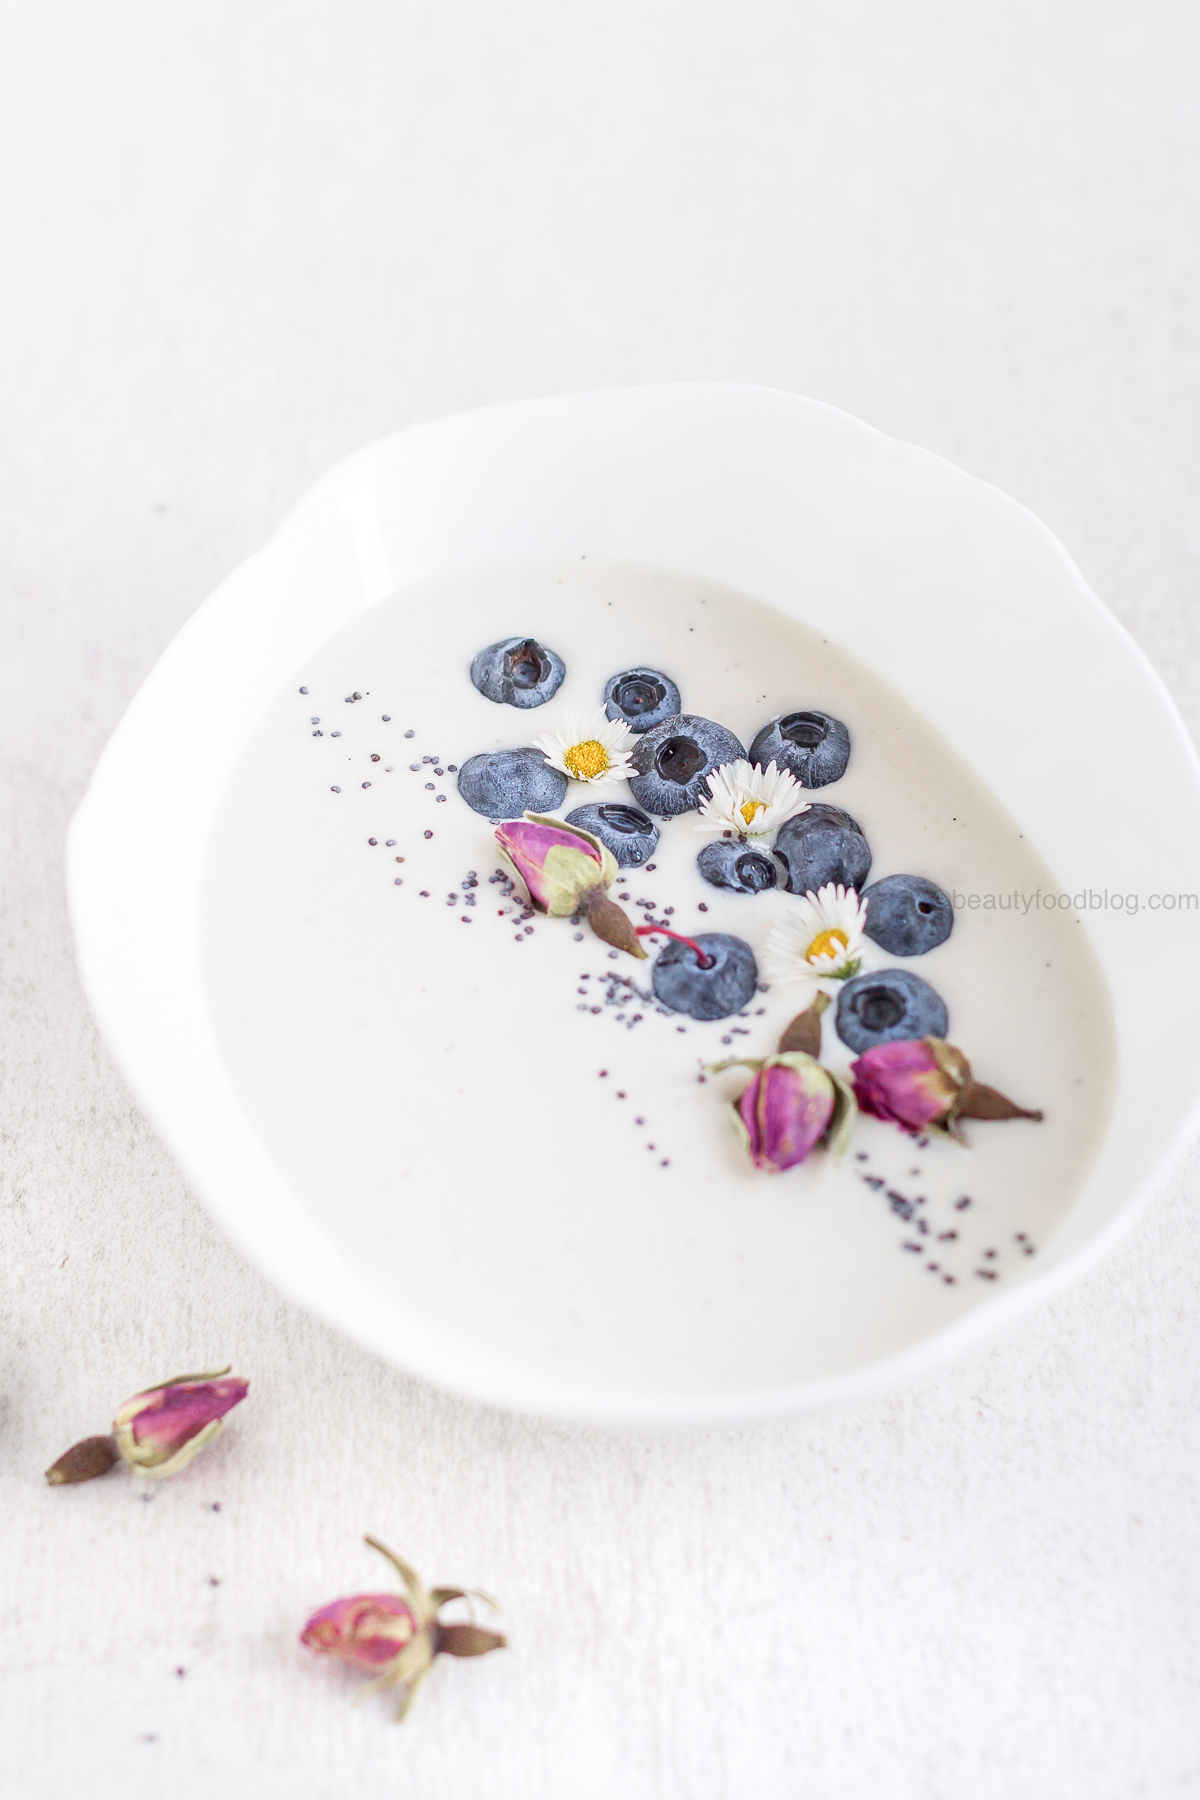 ricetta yogurt vegan fatto in casa facilissimo senza yogurtiera raw agli anacardi o mandorle - easy homemade vegan yogurt recipe - how to make homemade vegan yogurt no yogurt maker soy-free